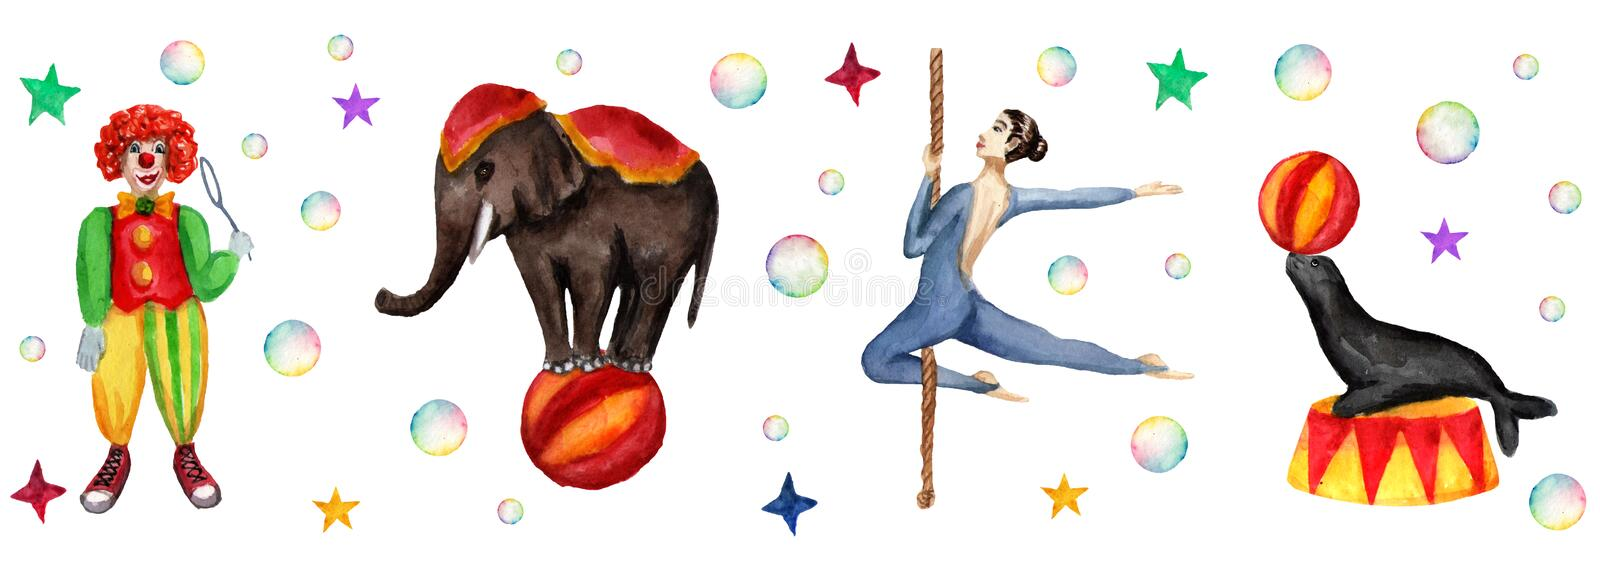 Circus horizontal pattern, elephant, clown, seal and acrobat. Watercolor illustration on white vector illustration